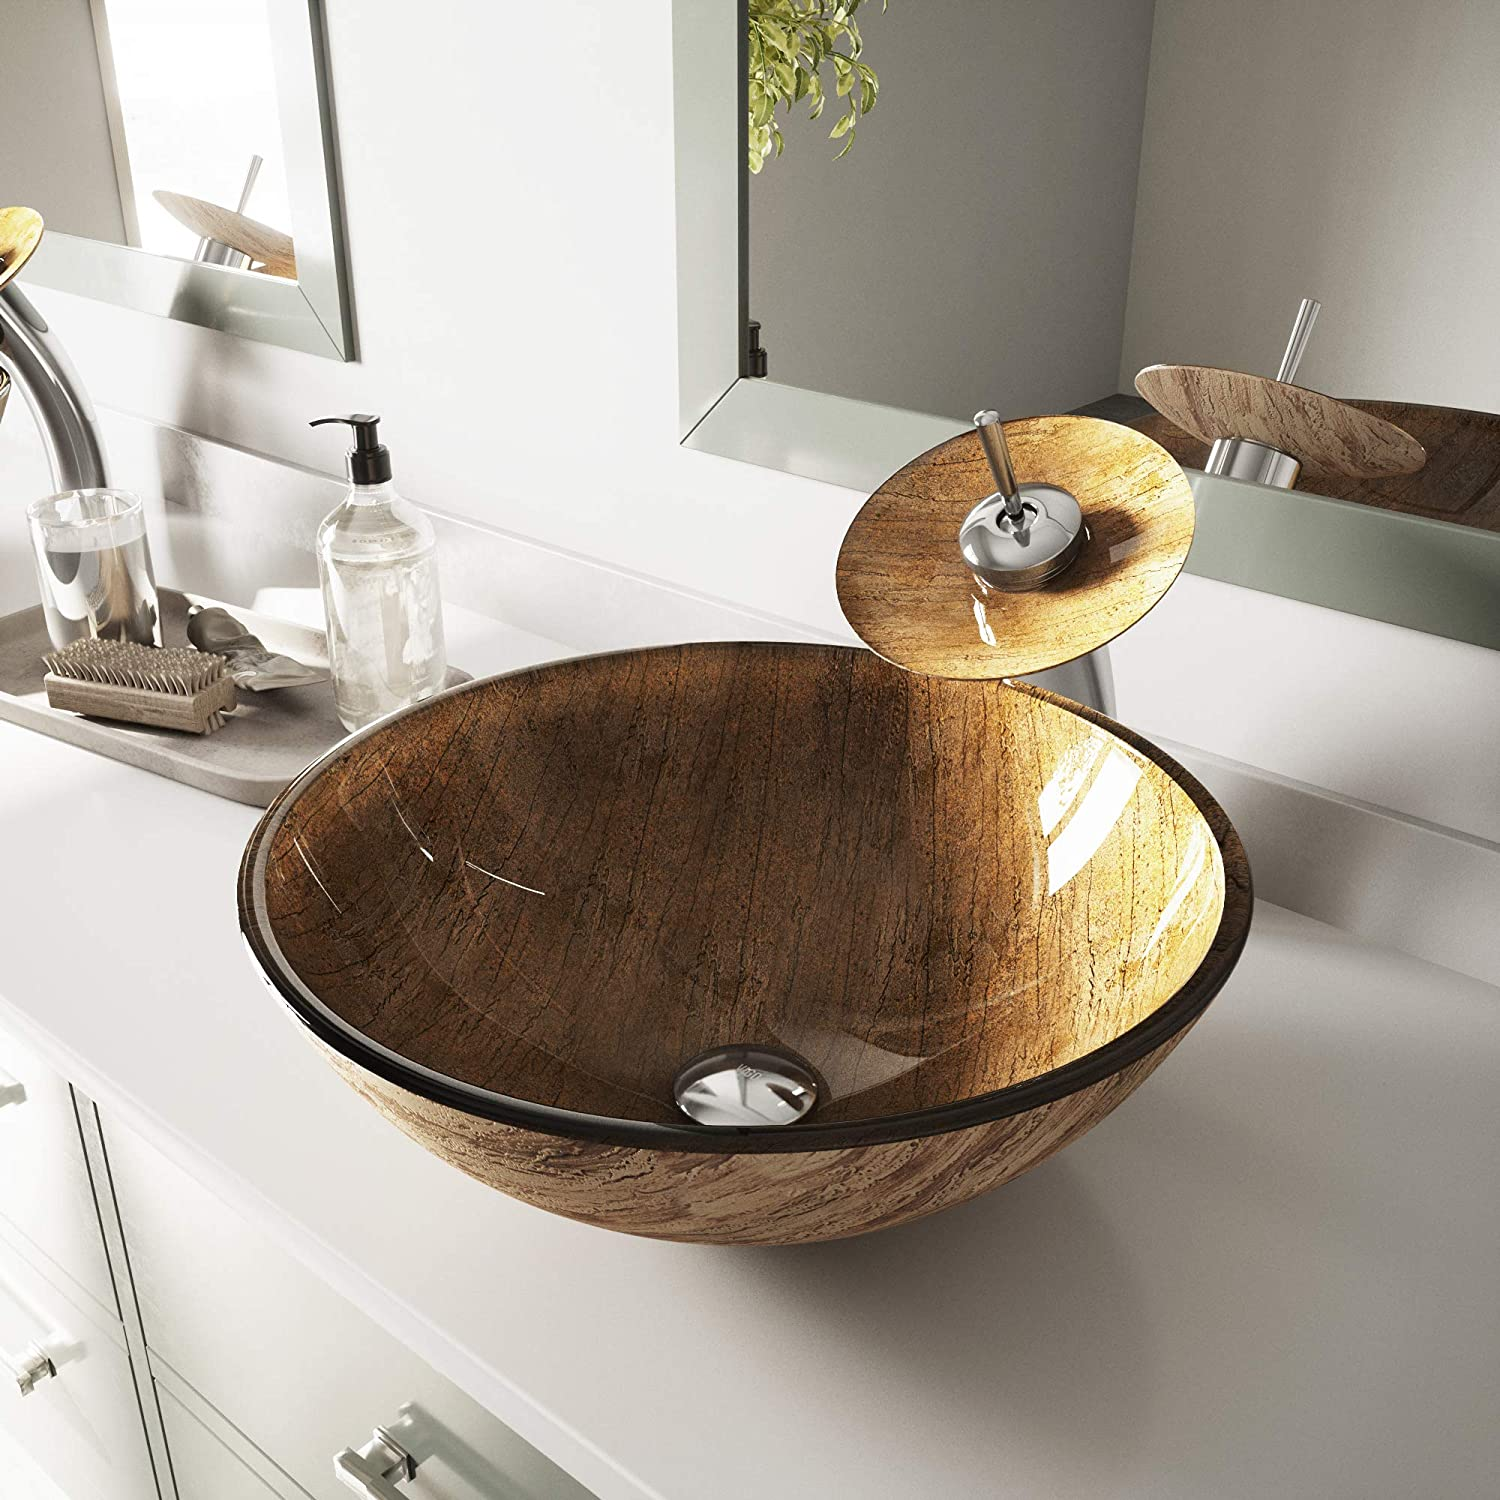 VIGO Handmade Amber Sunset Golden Woodgrain 16 Diameter Round Tempered Glass Vessel Vanity Bathroom Sink. Sink Only. Above Counter Install. Non-Porous, Scratch Stain Resistant Surface